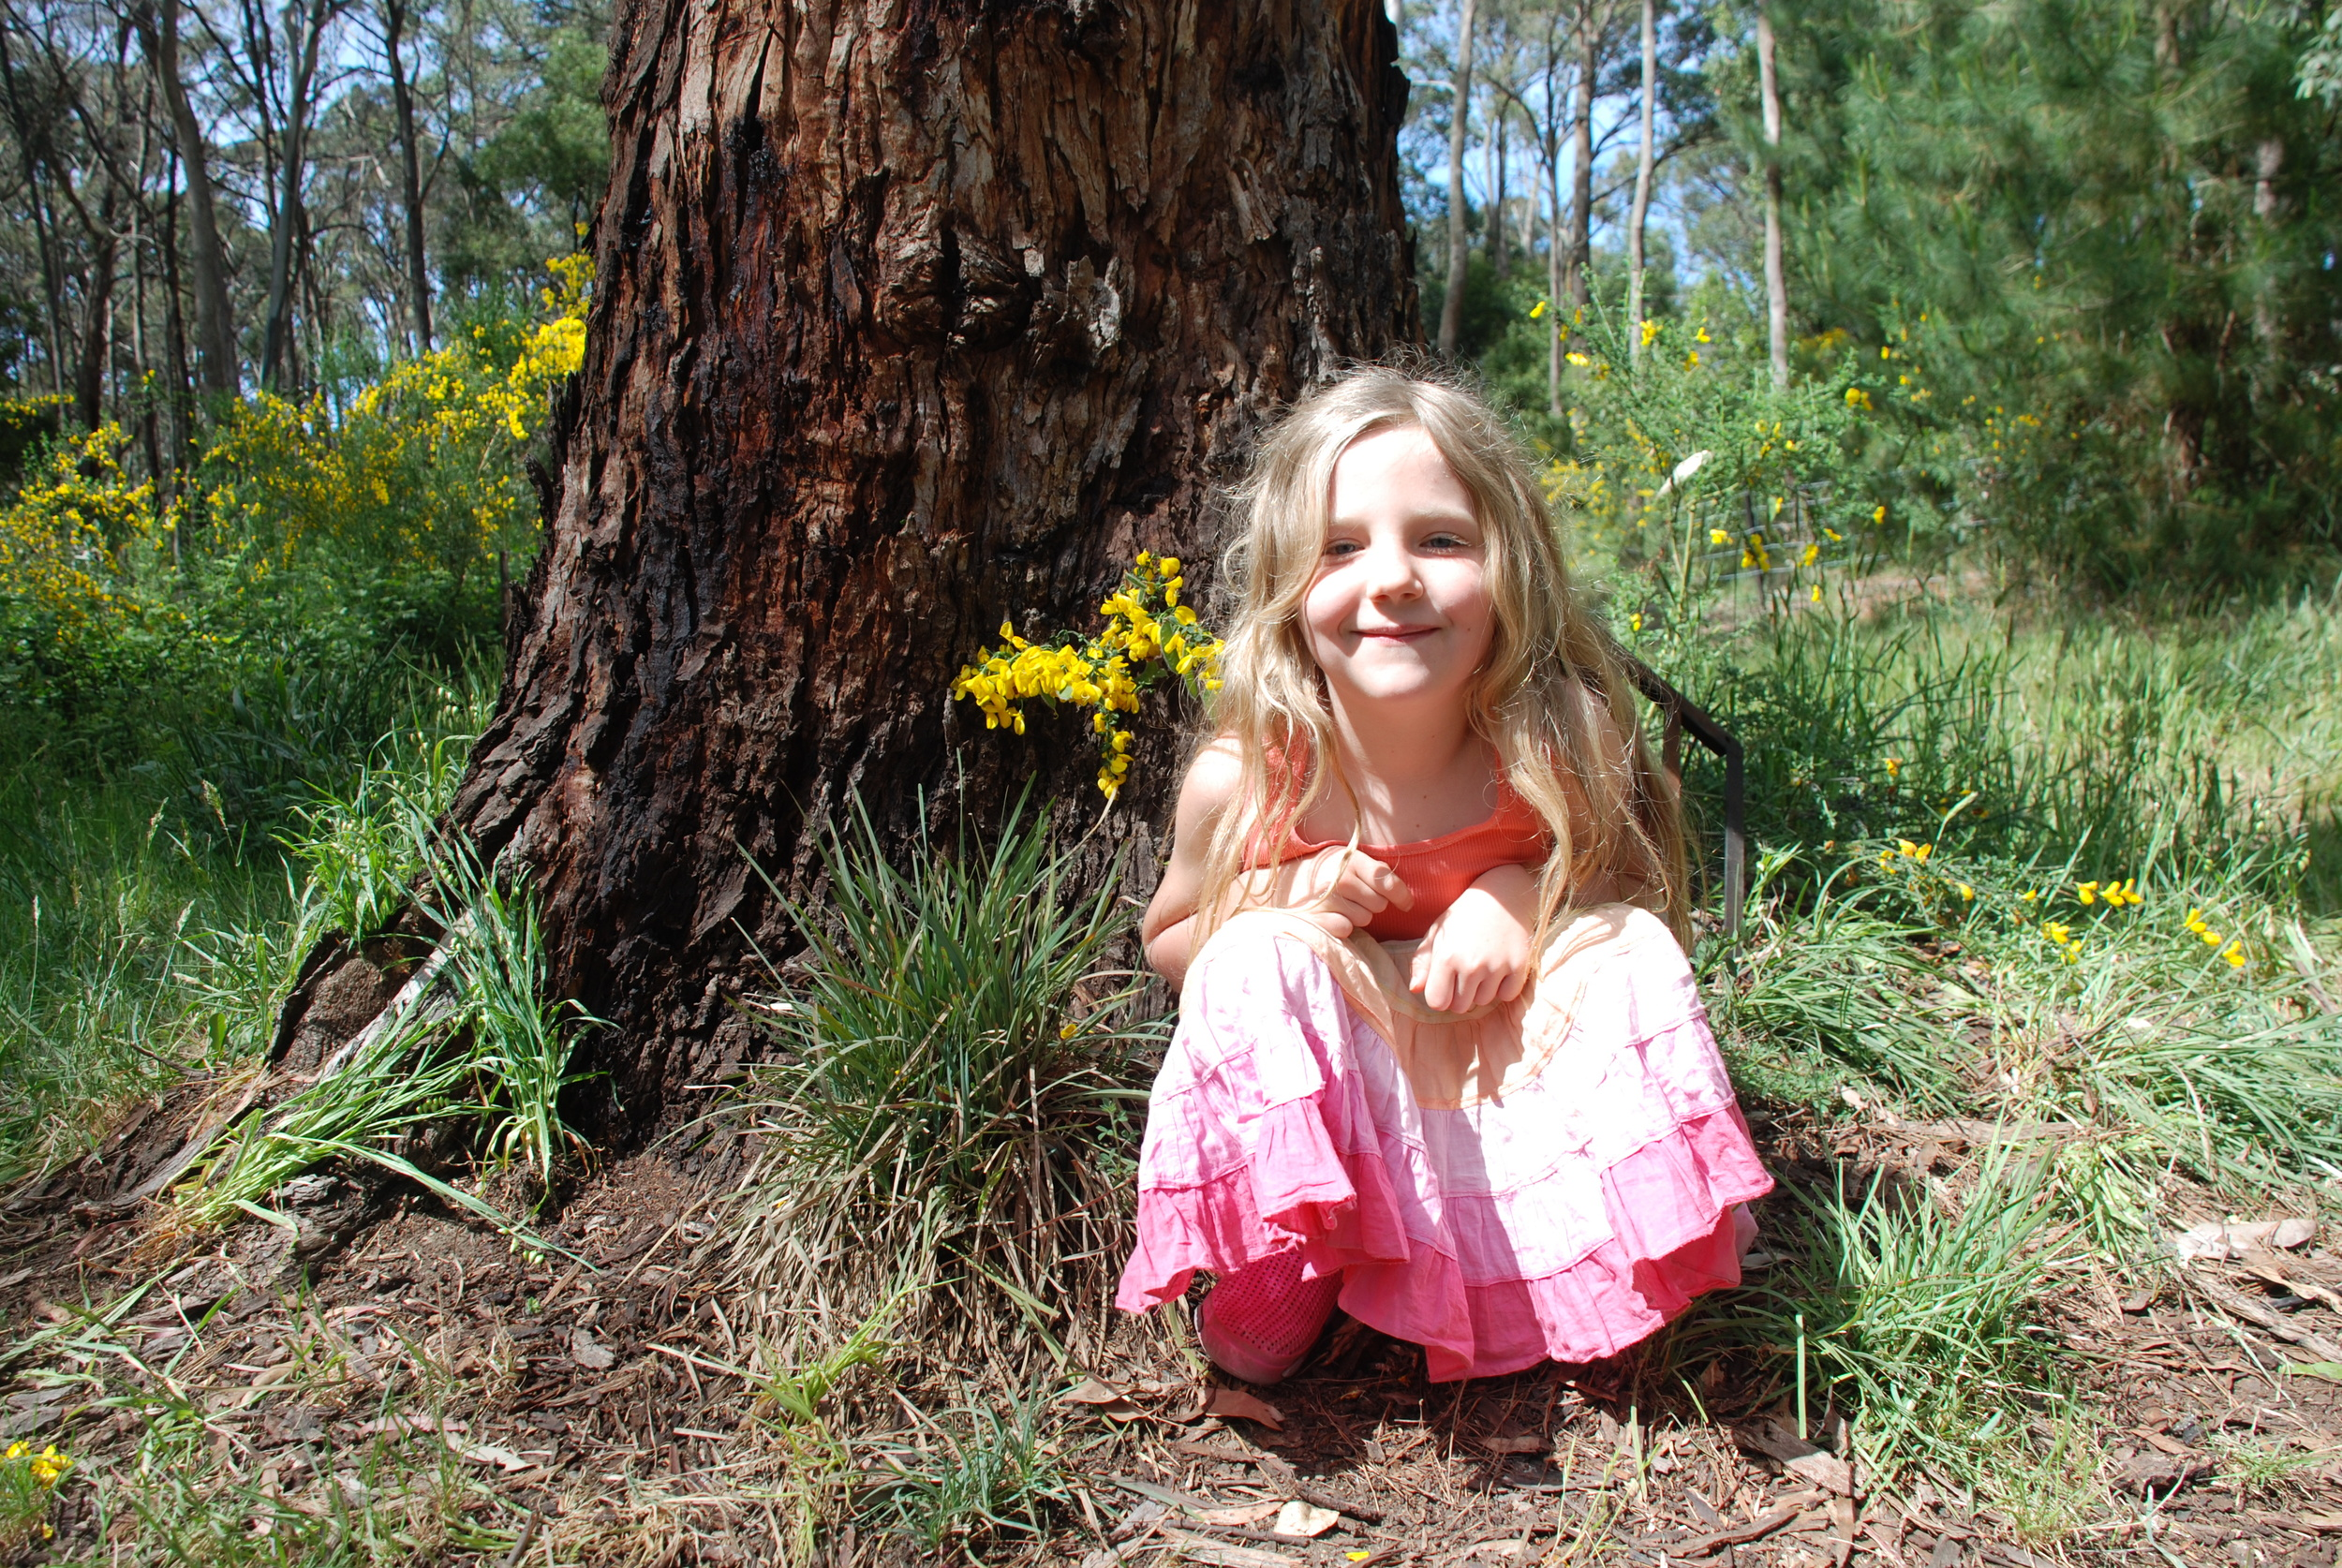 A Fairy By Her Fairy House.jpg